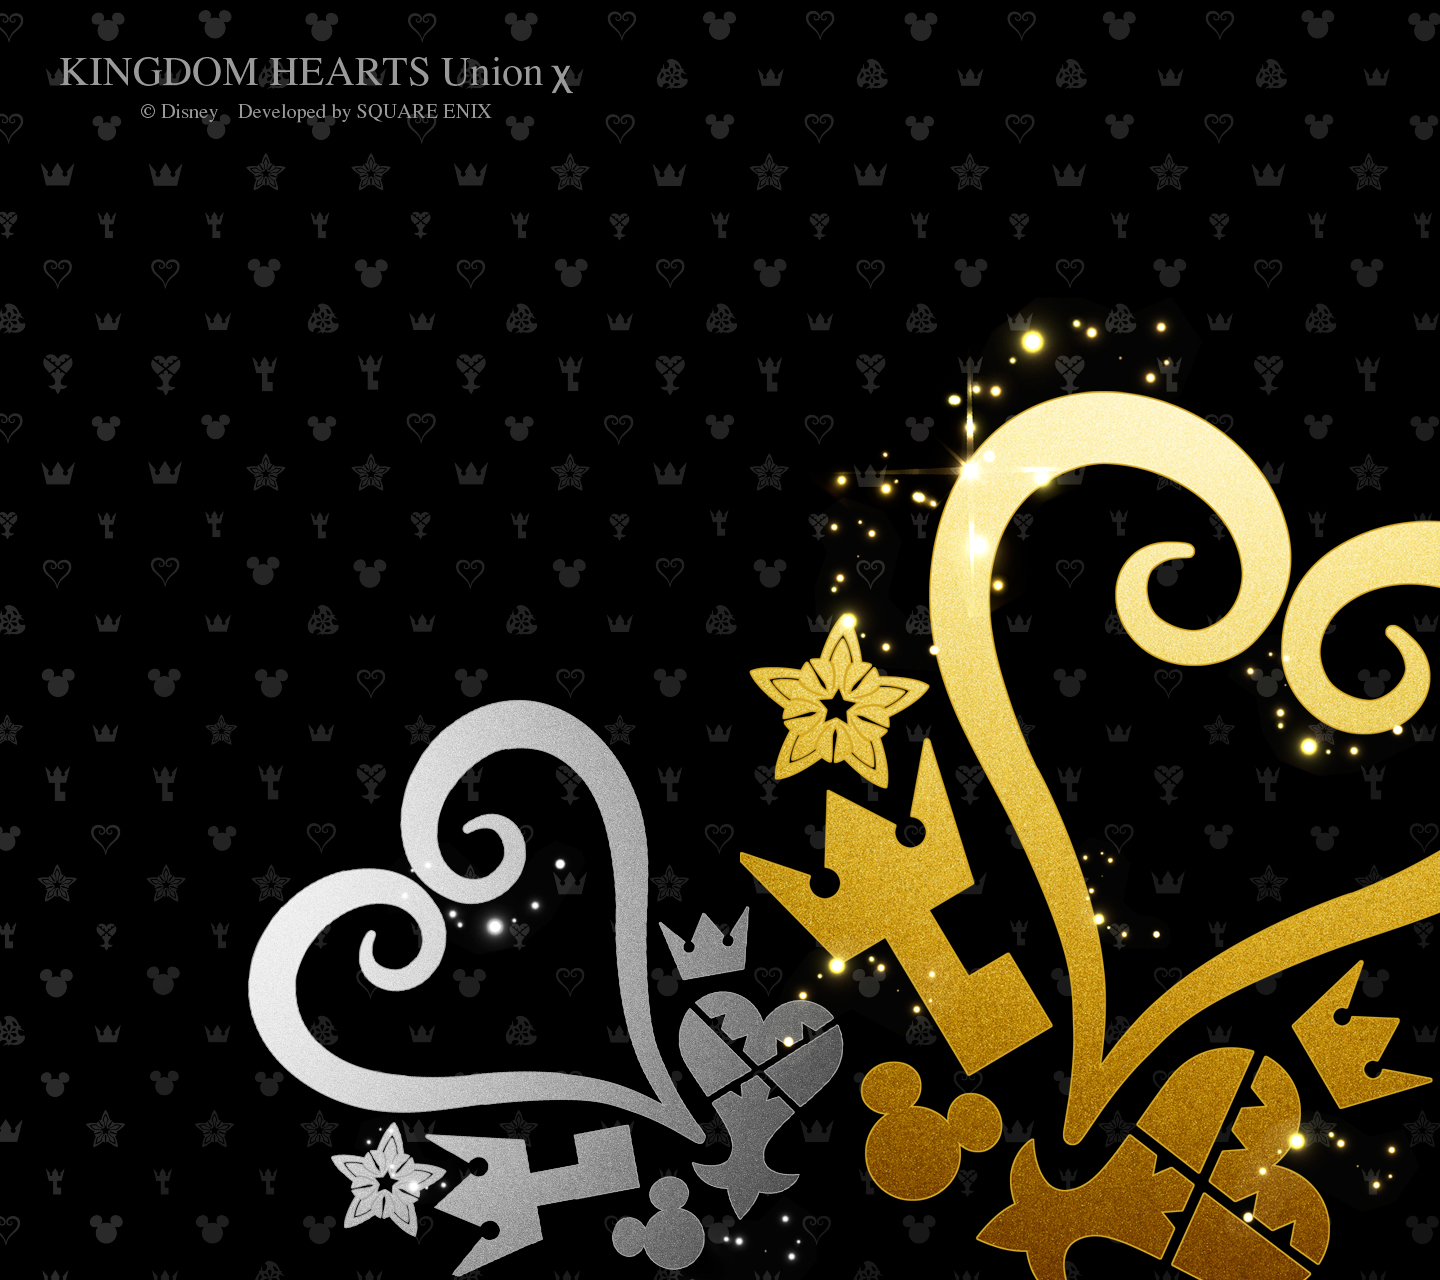 Kingdom Hearts Union X Wallpapers. Android